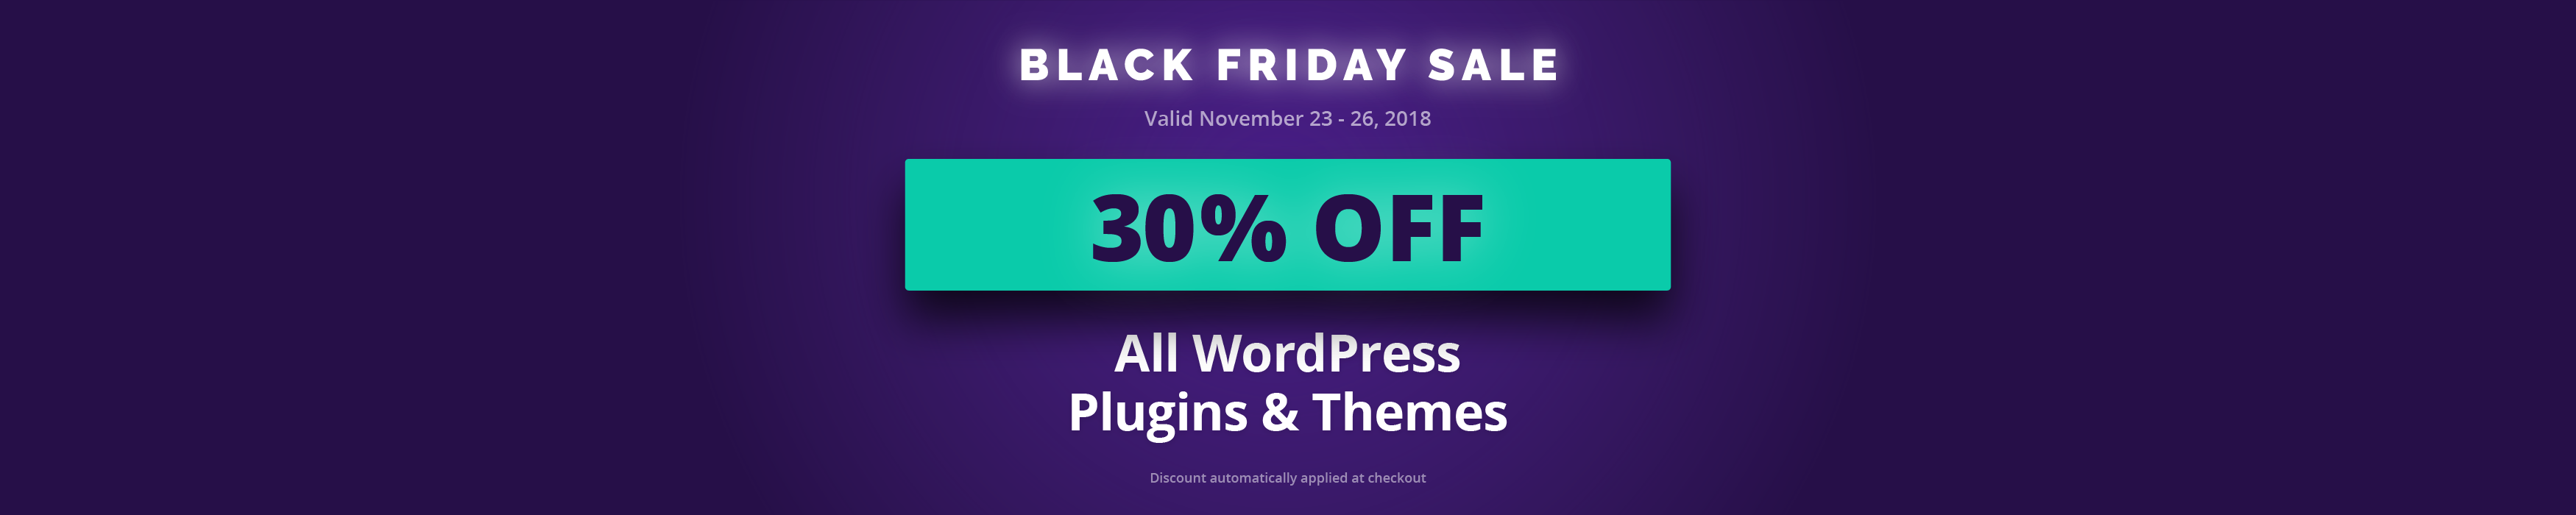 WordPress Plugins Black Friday